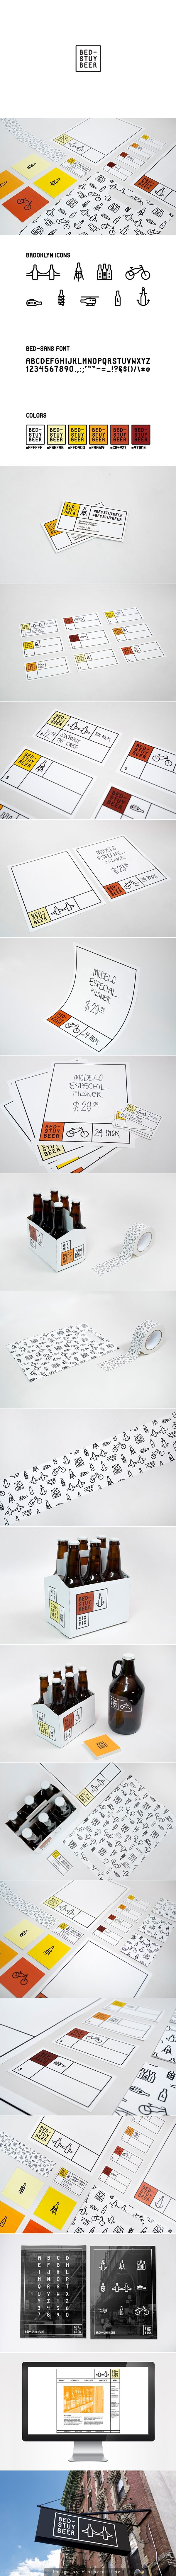 Bed-Stuy Beer Rebrand on Behance